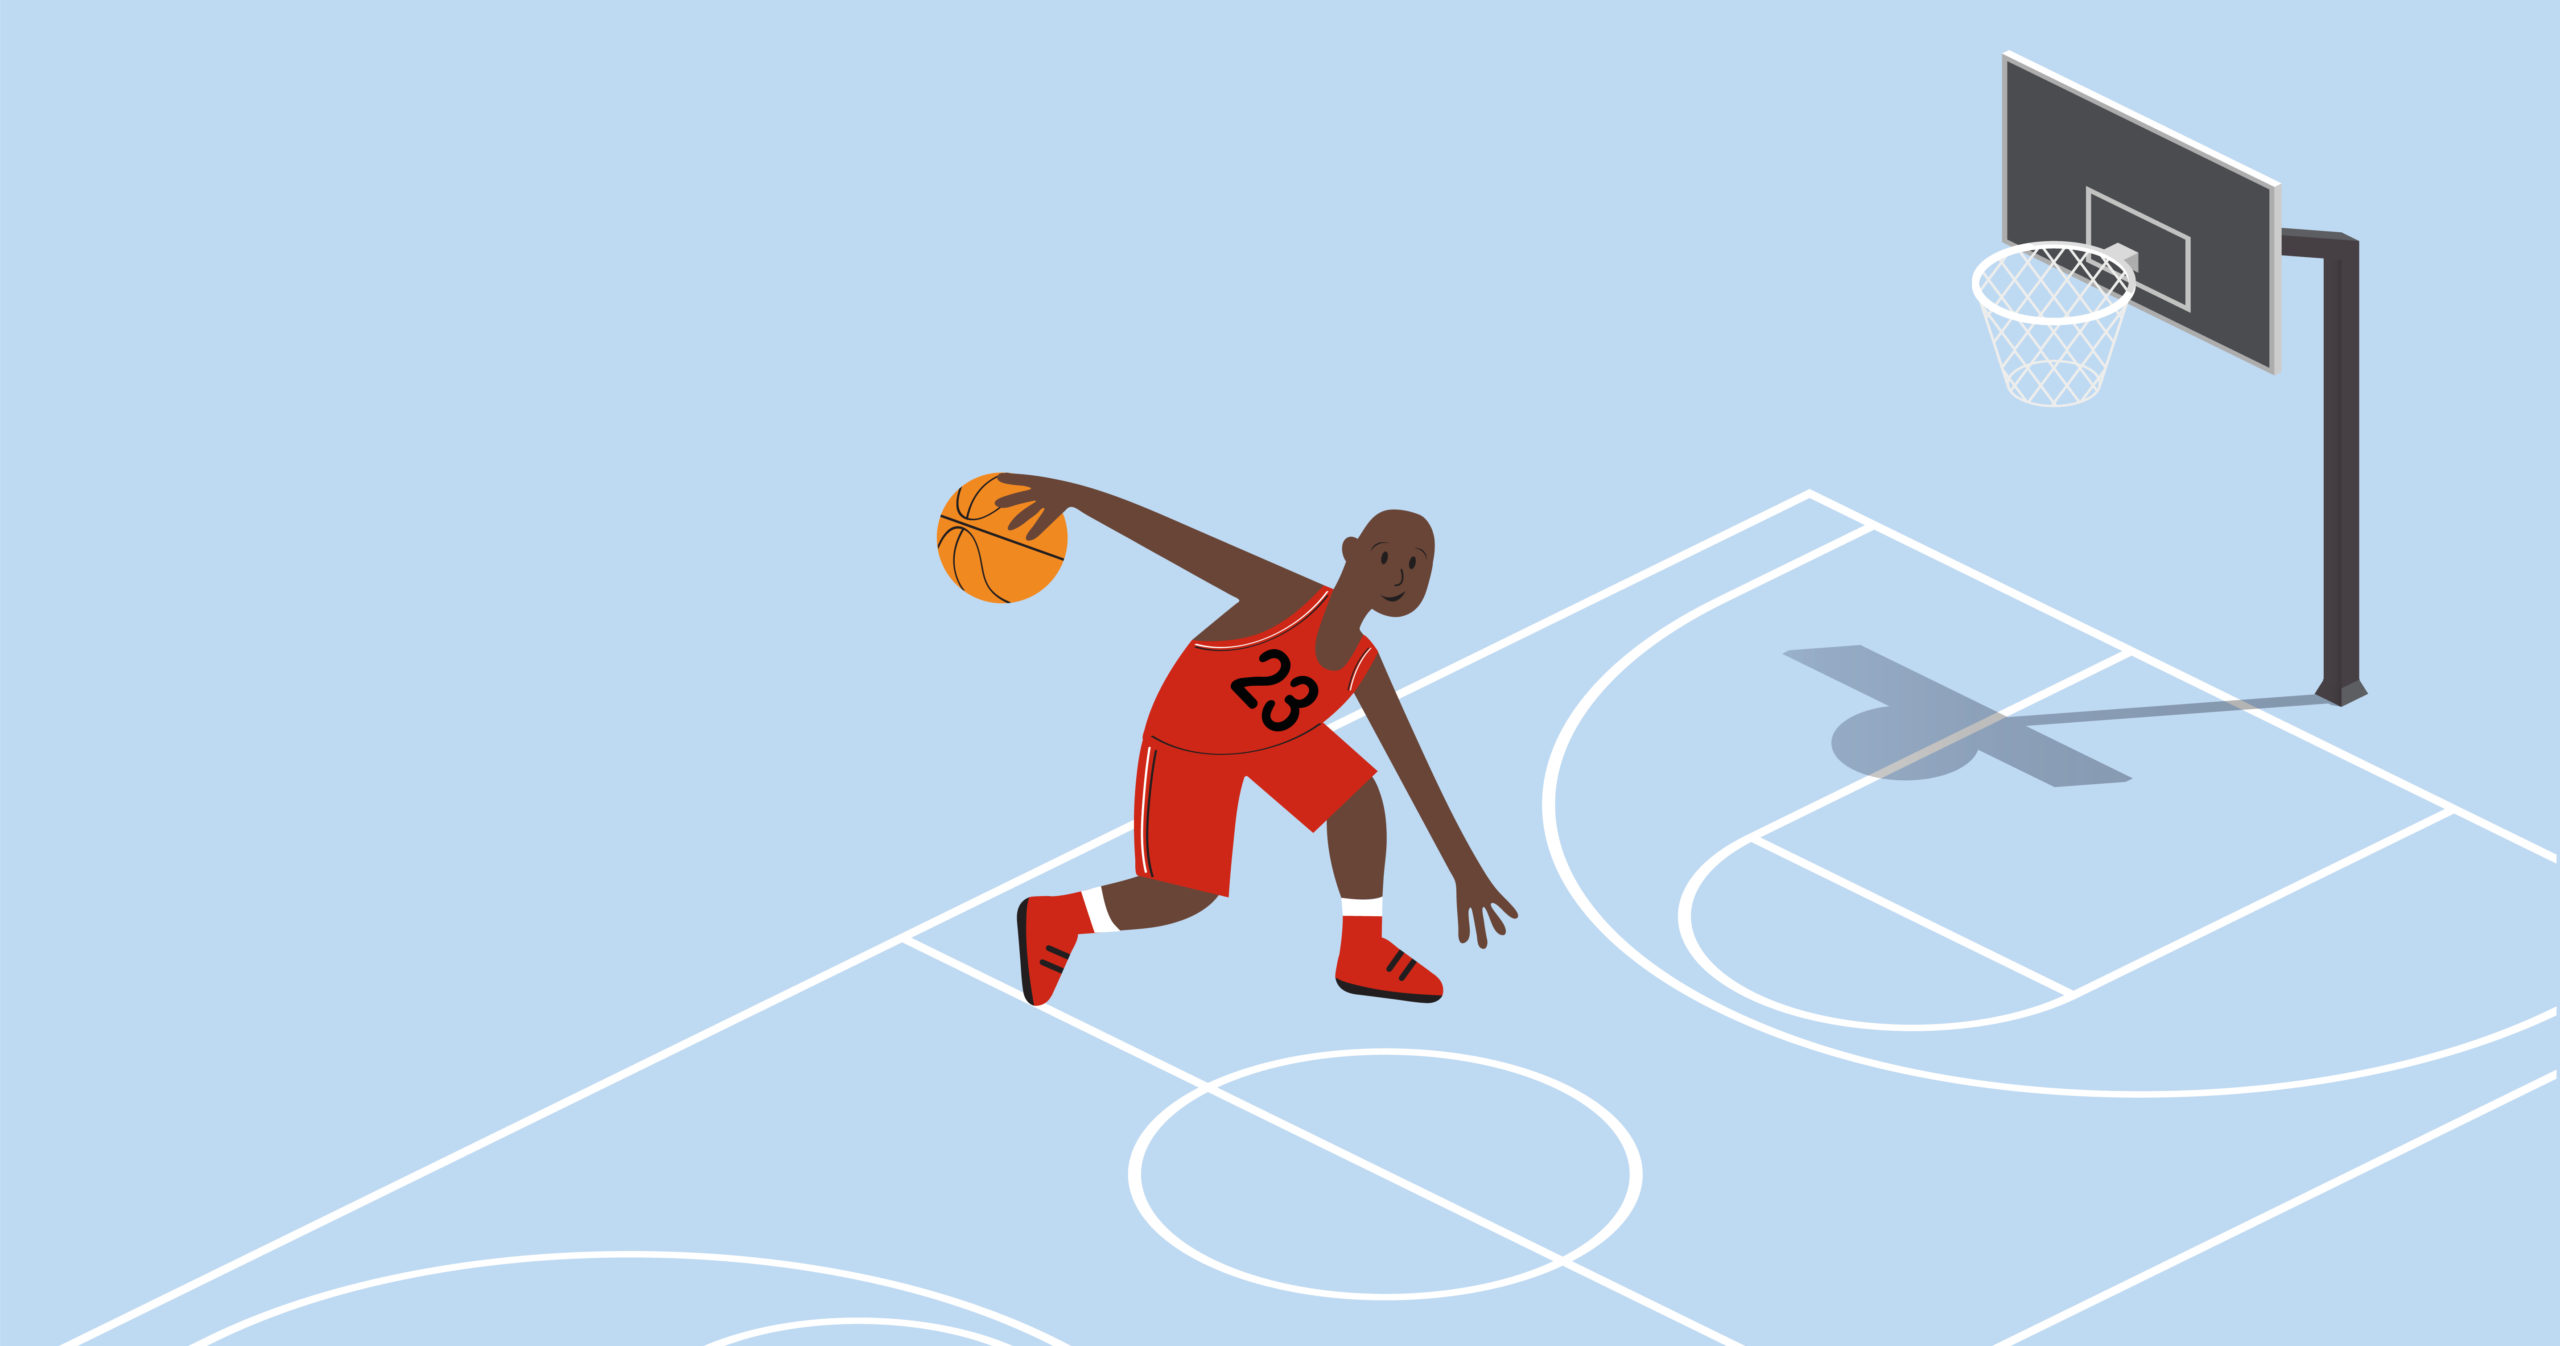 Illustration of Michael Jordan